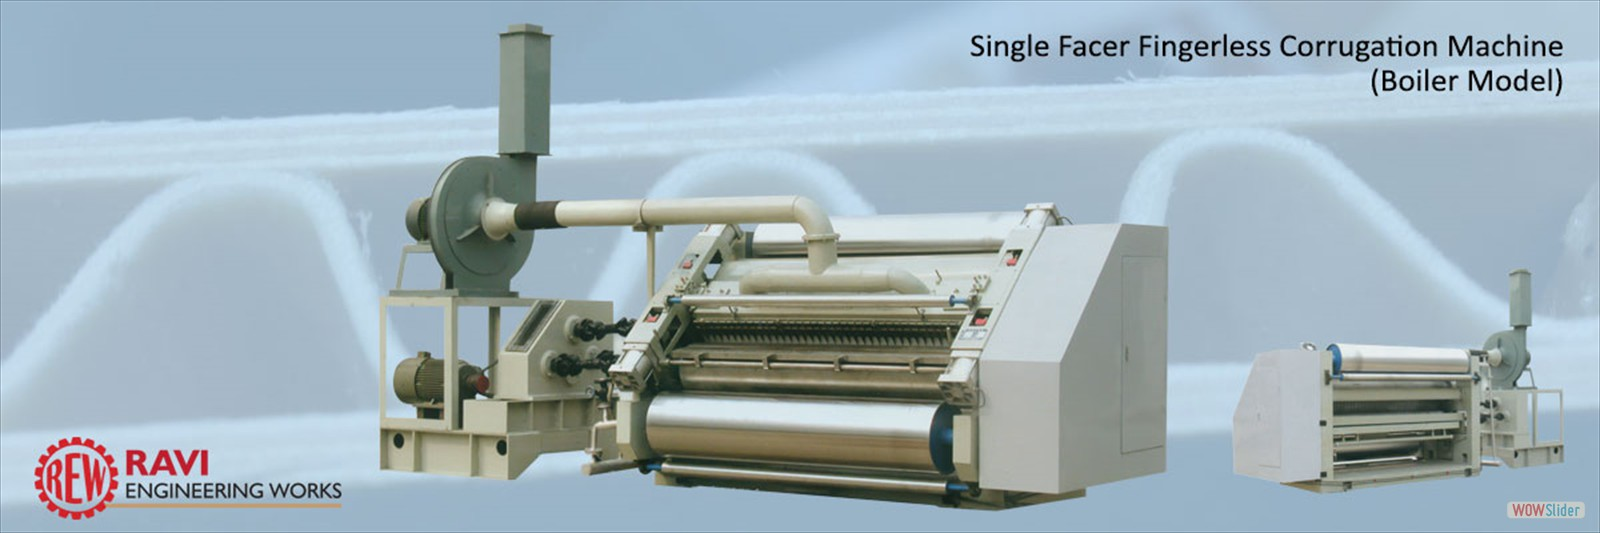 Single Facer Fingerless Corrugation Machine (Boiler Model)